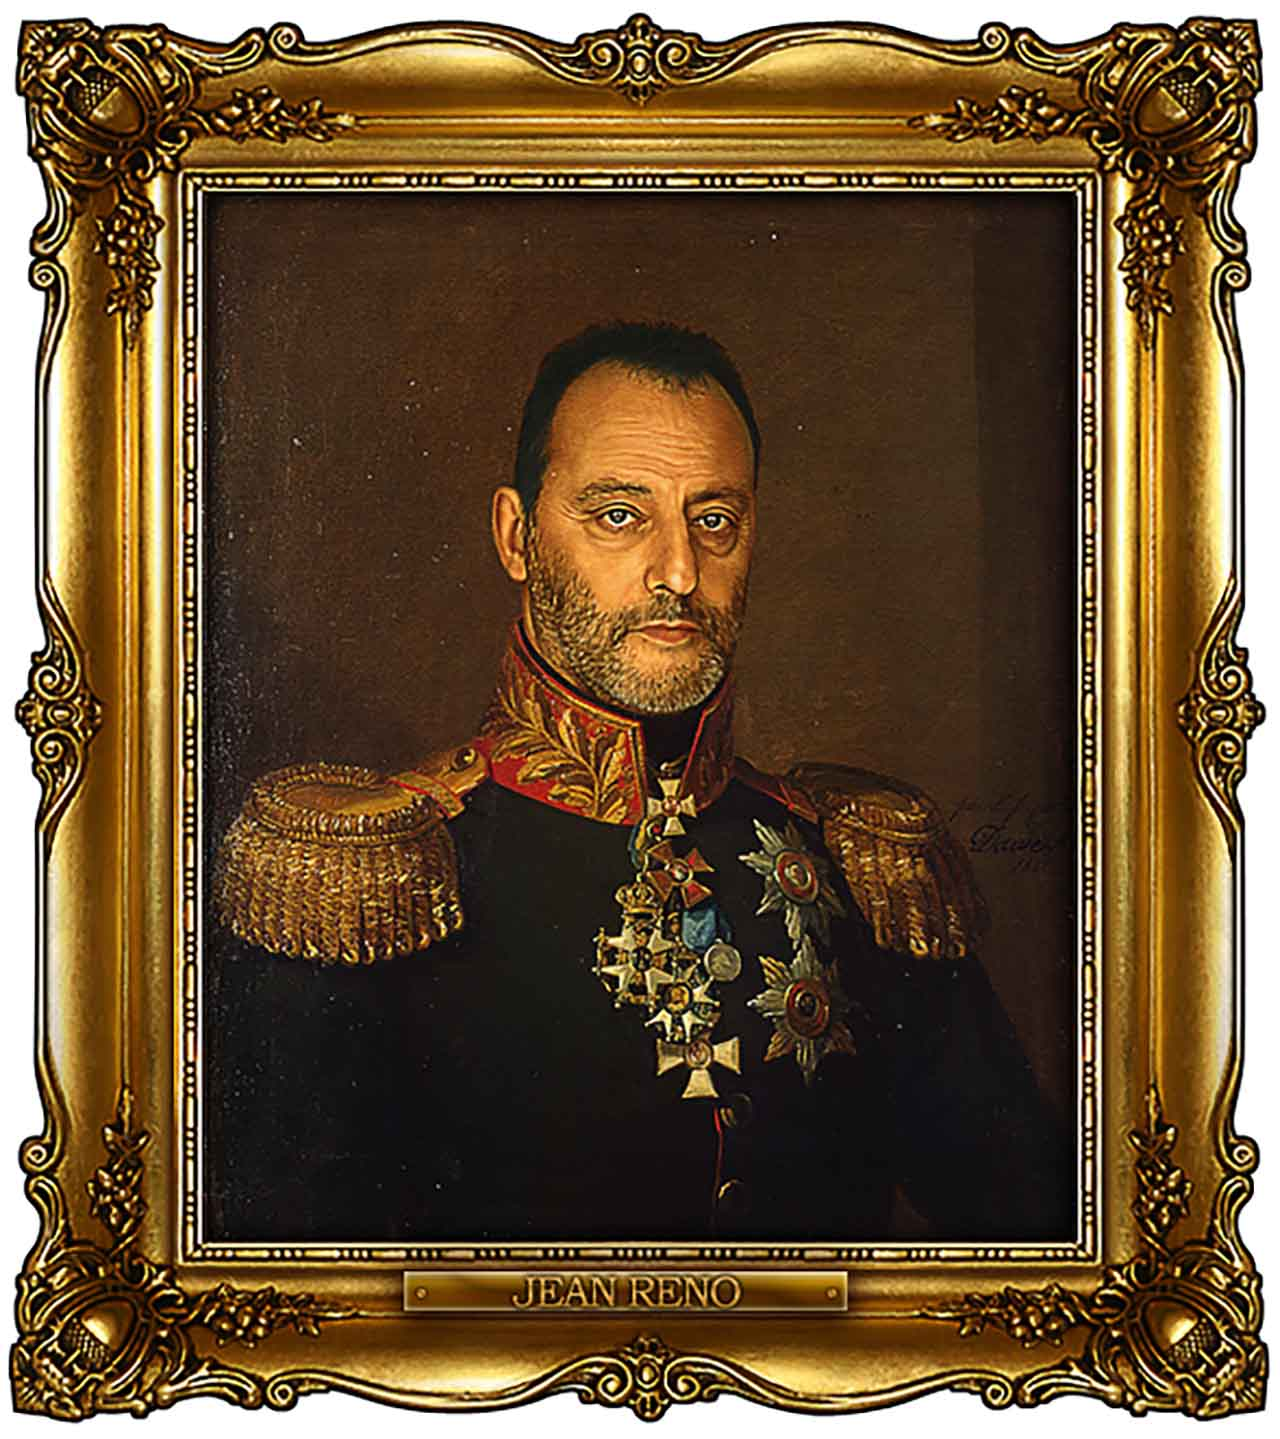 Artist Turns Famous Actors Into Russian Generals - Jean Reno